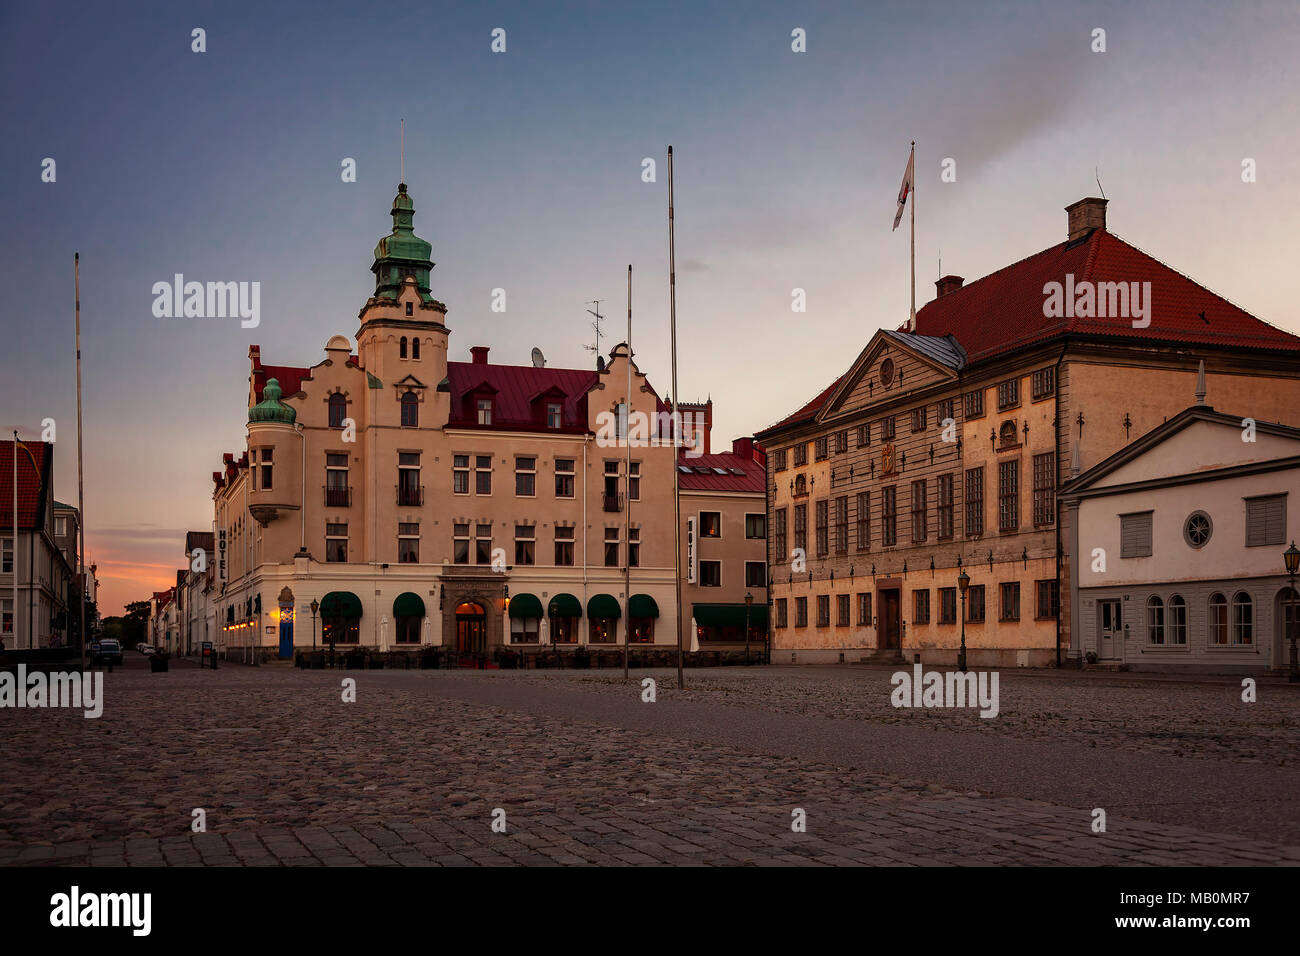 The picturesque town centre of Kalmar, Sweden. - Stock Image